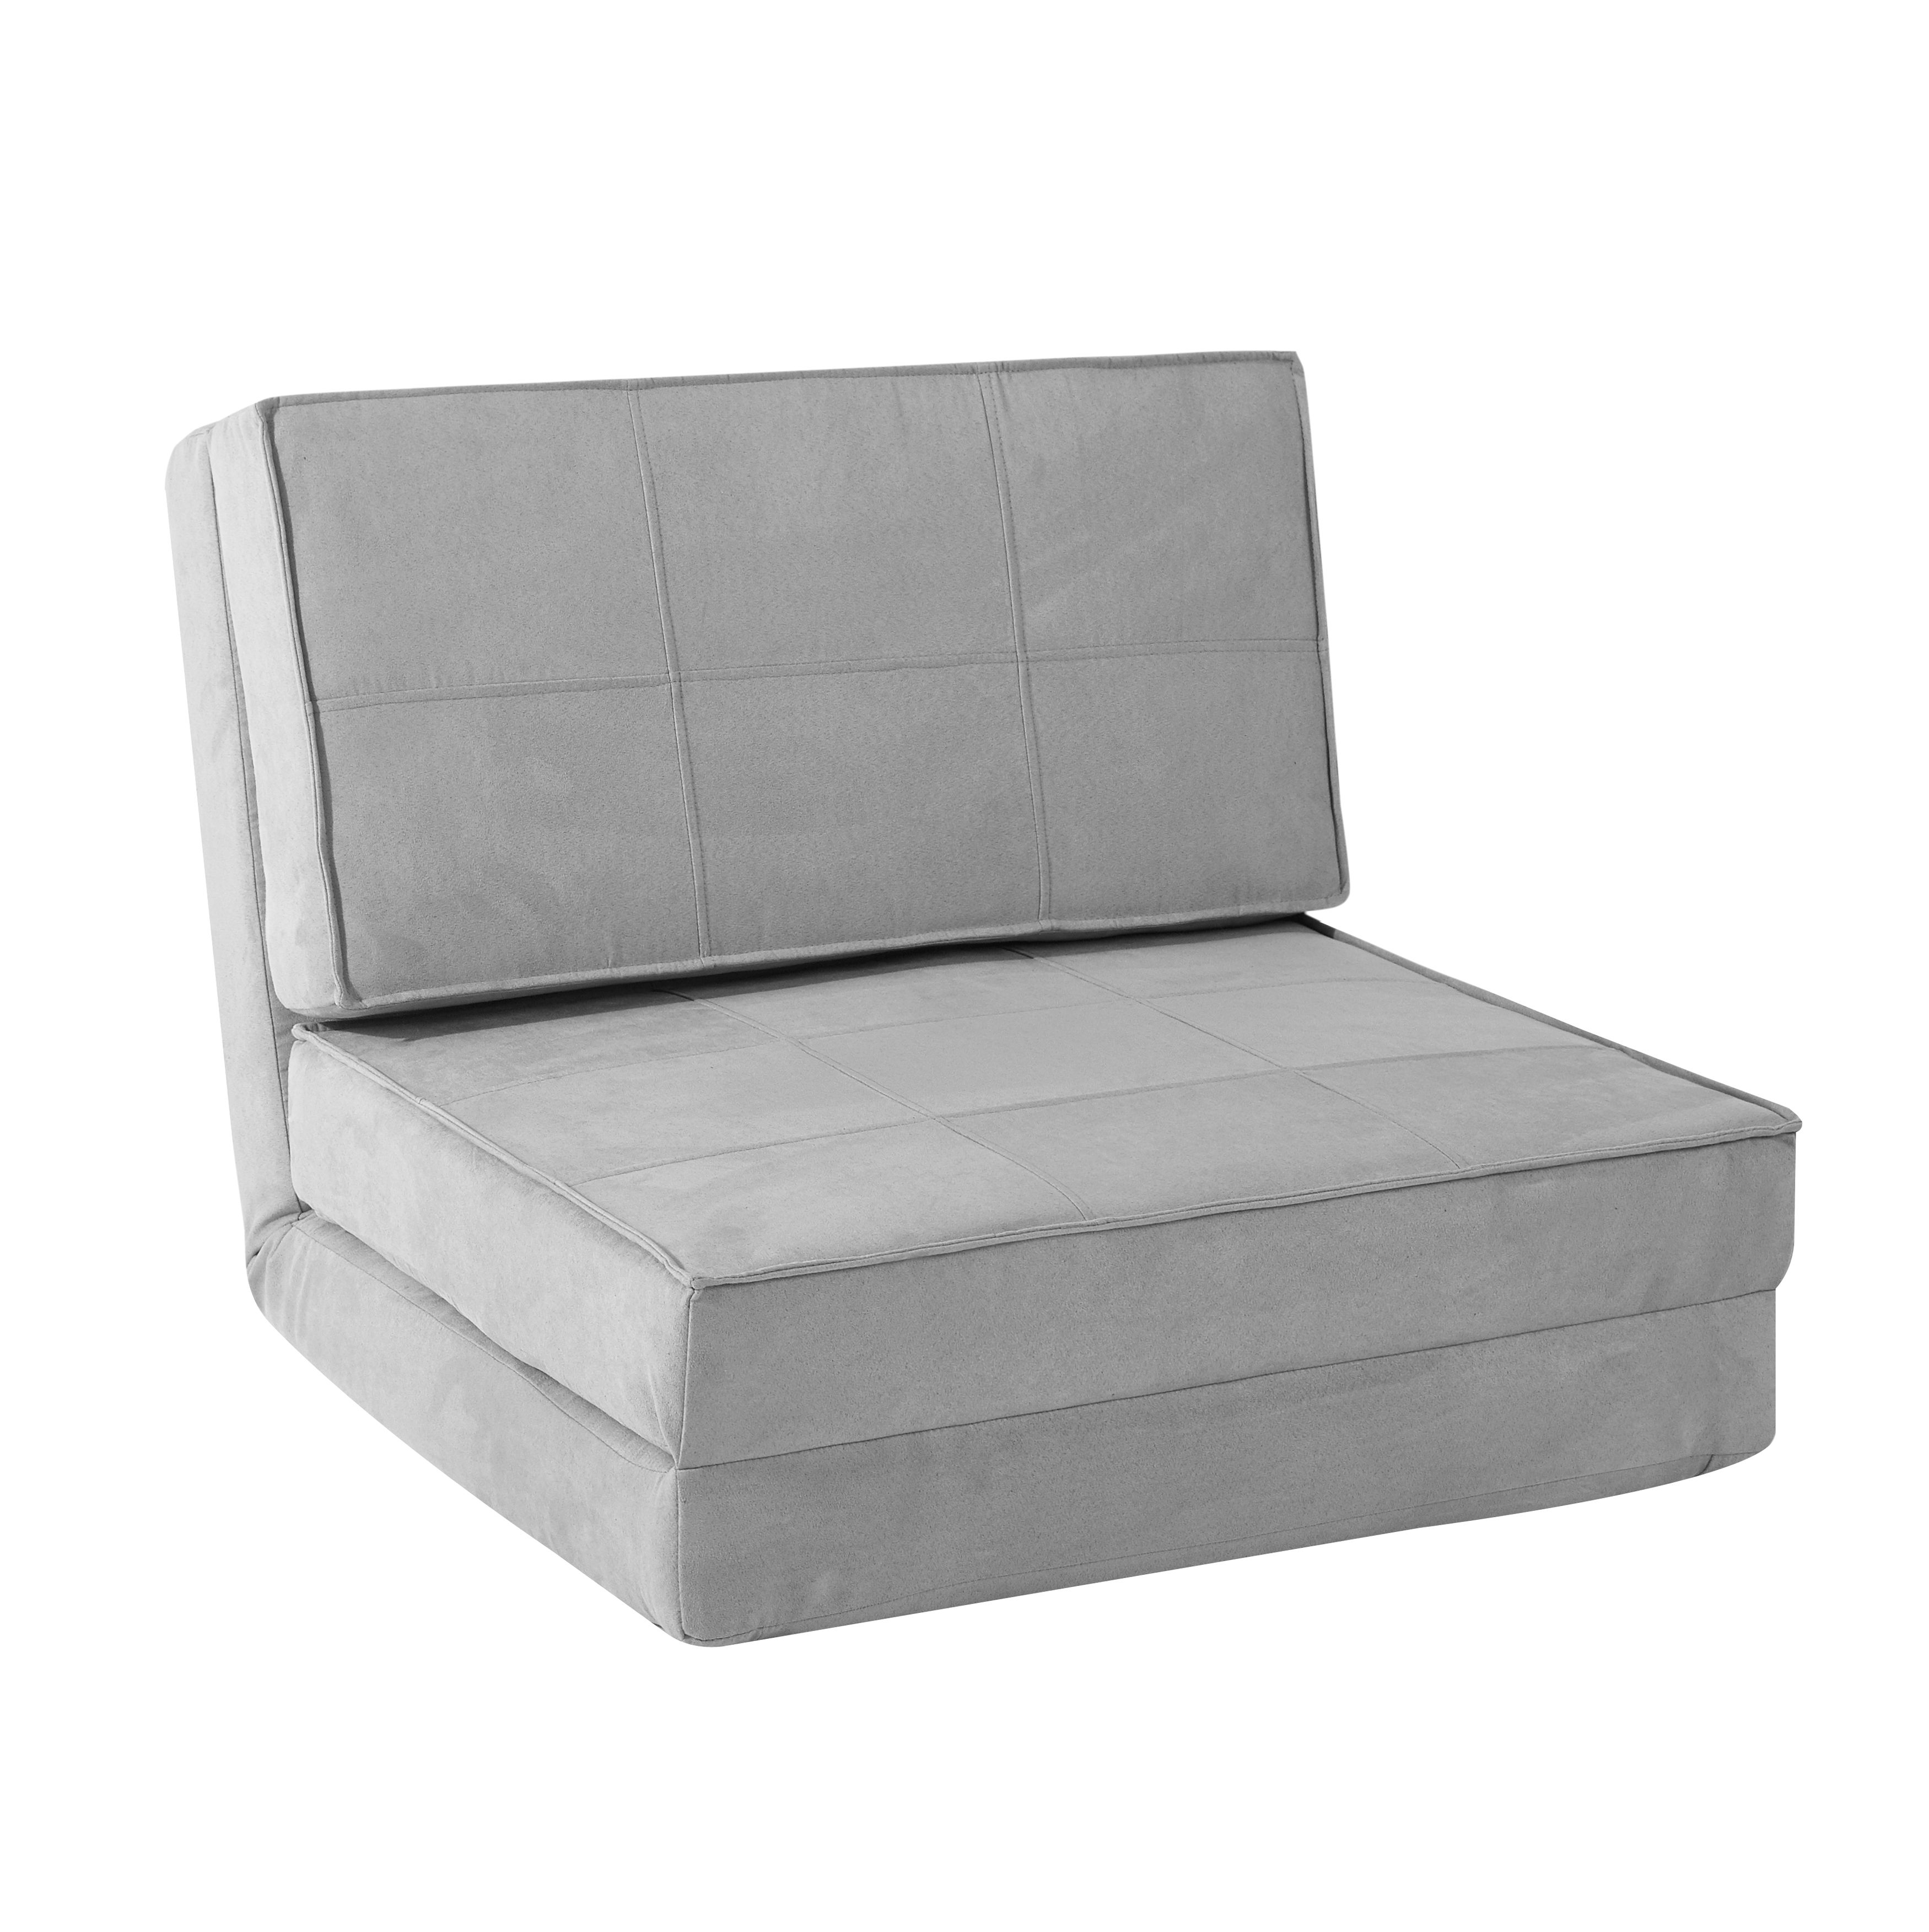 Free 2 Day Shipping Buy Your Zone Flip Chair Available In